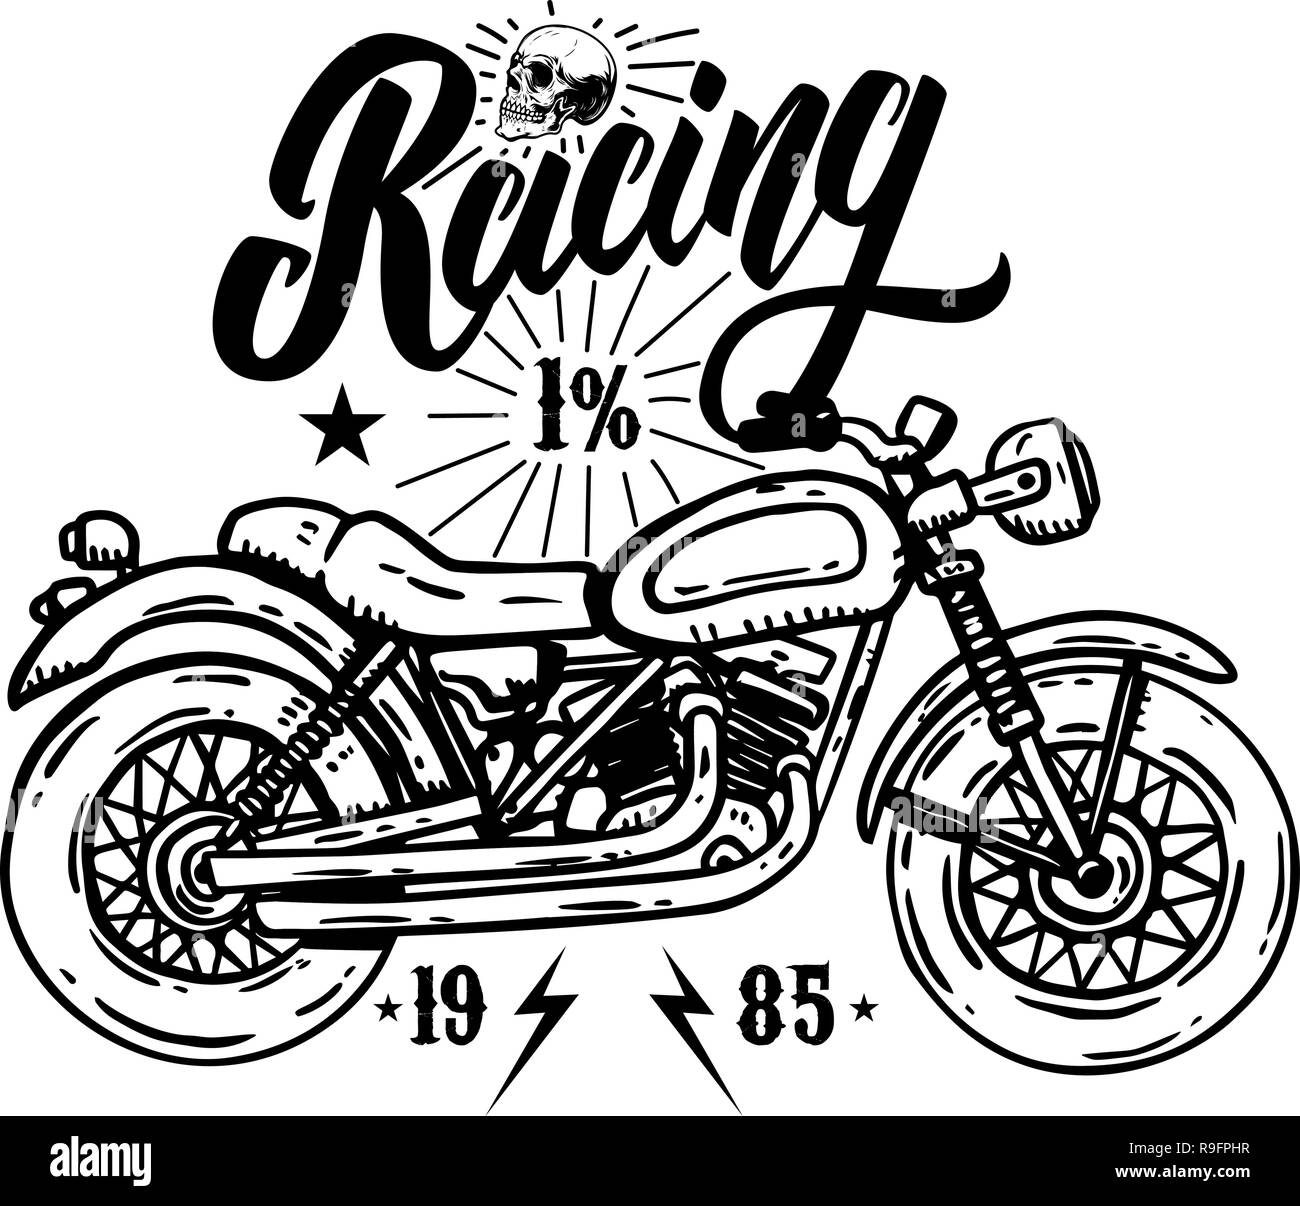 ee9a4951 Emblem template with biker motorcycle. Design element for poster, t shirt,  sign, label, logo. Vector illustration